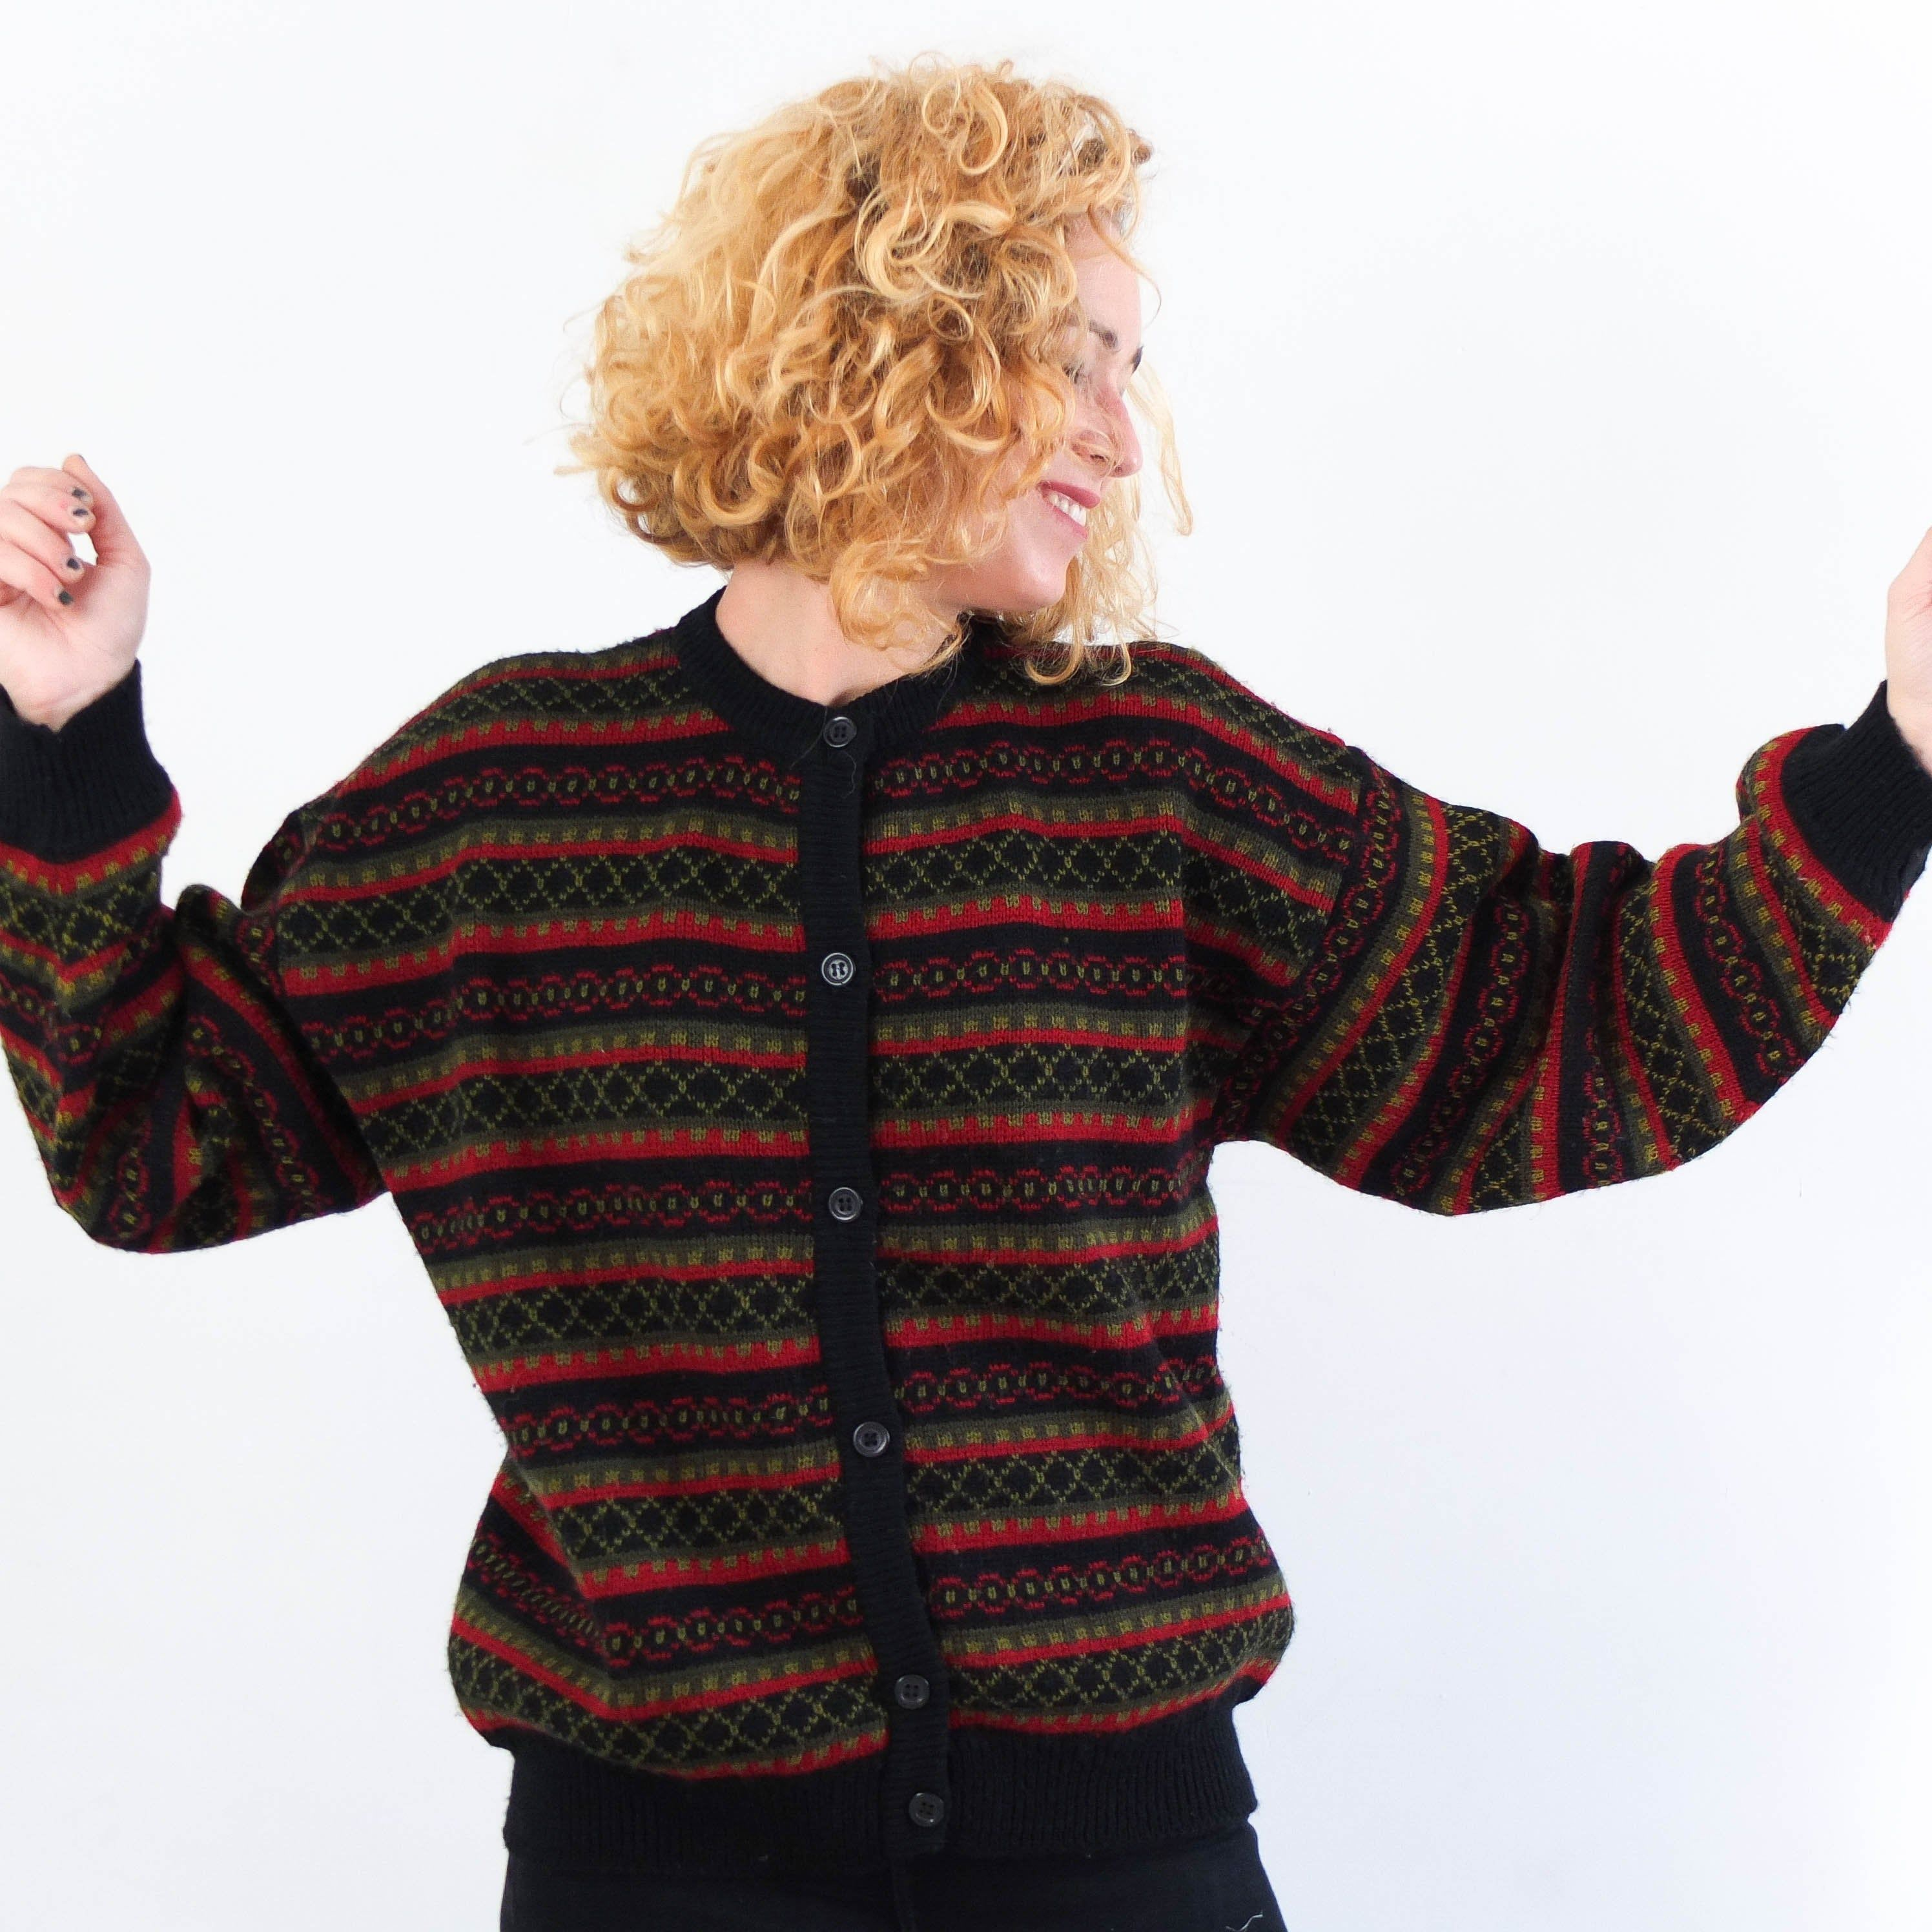 80s fuzzy red sweater knit sweater oversized baggy vintage floral sweater with shoulder pads 1980s 80s v neck